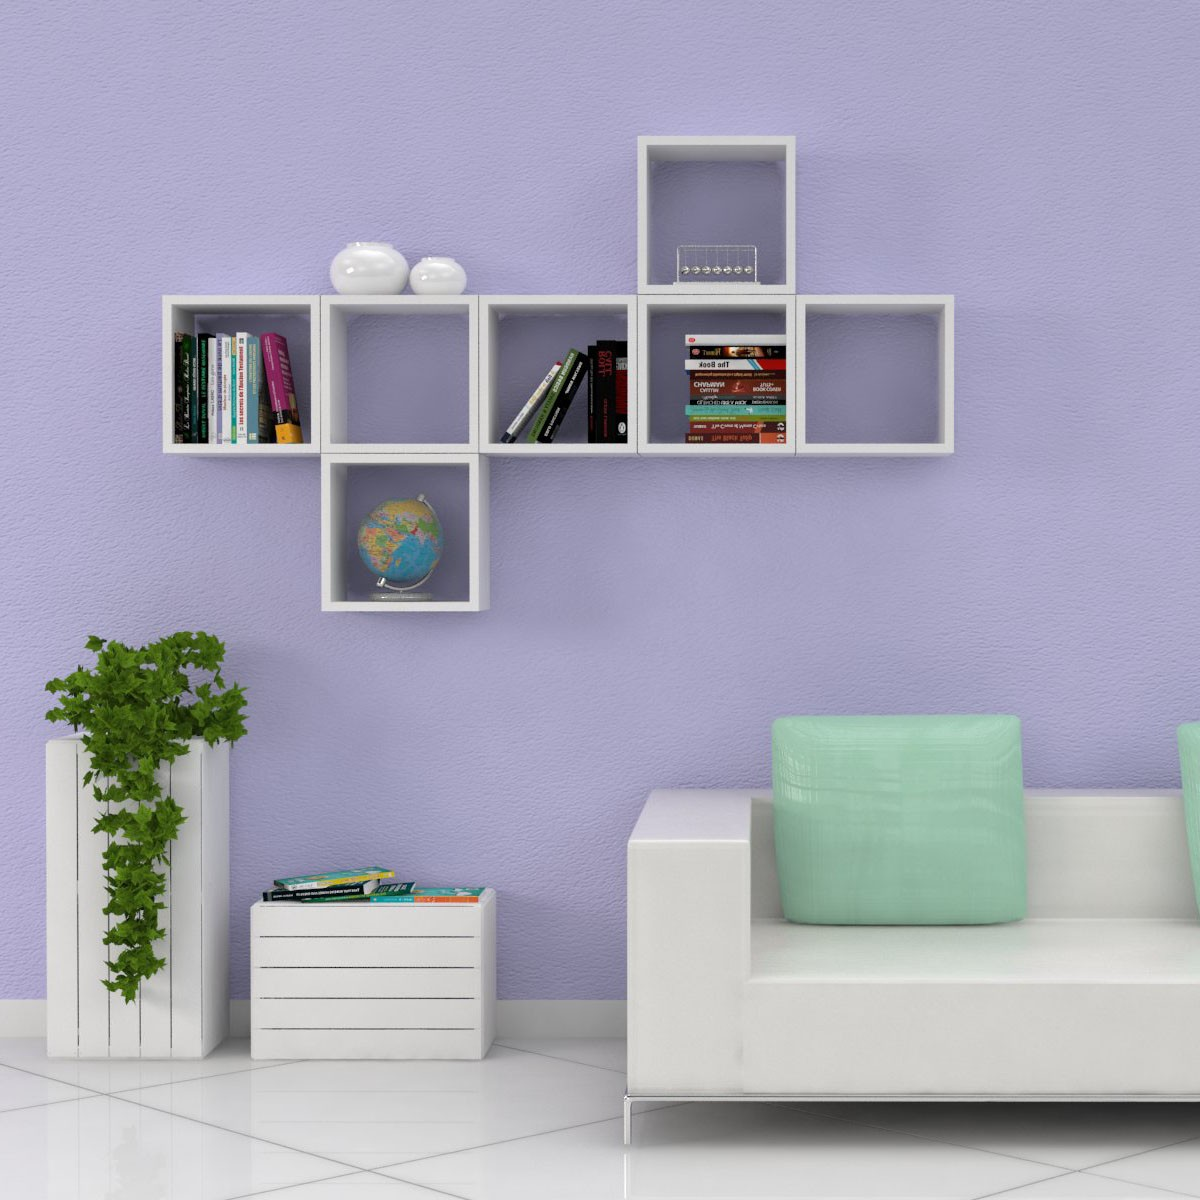 wall cube shelves  wall cubes  storage cube  wooden wall cubes - wall cubes thickness  cm